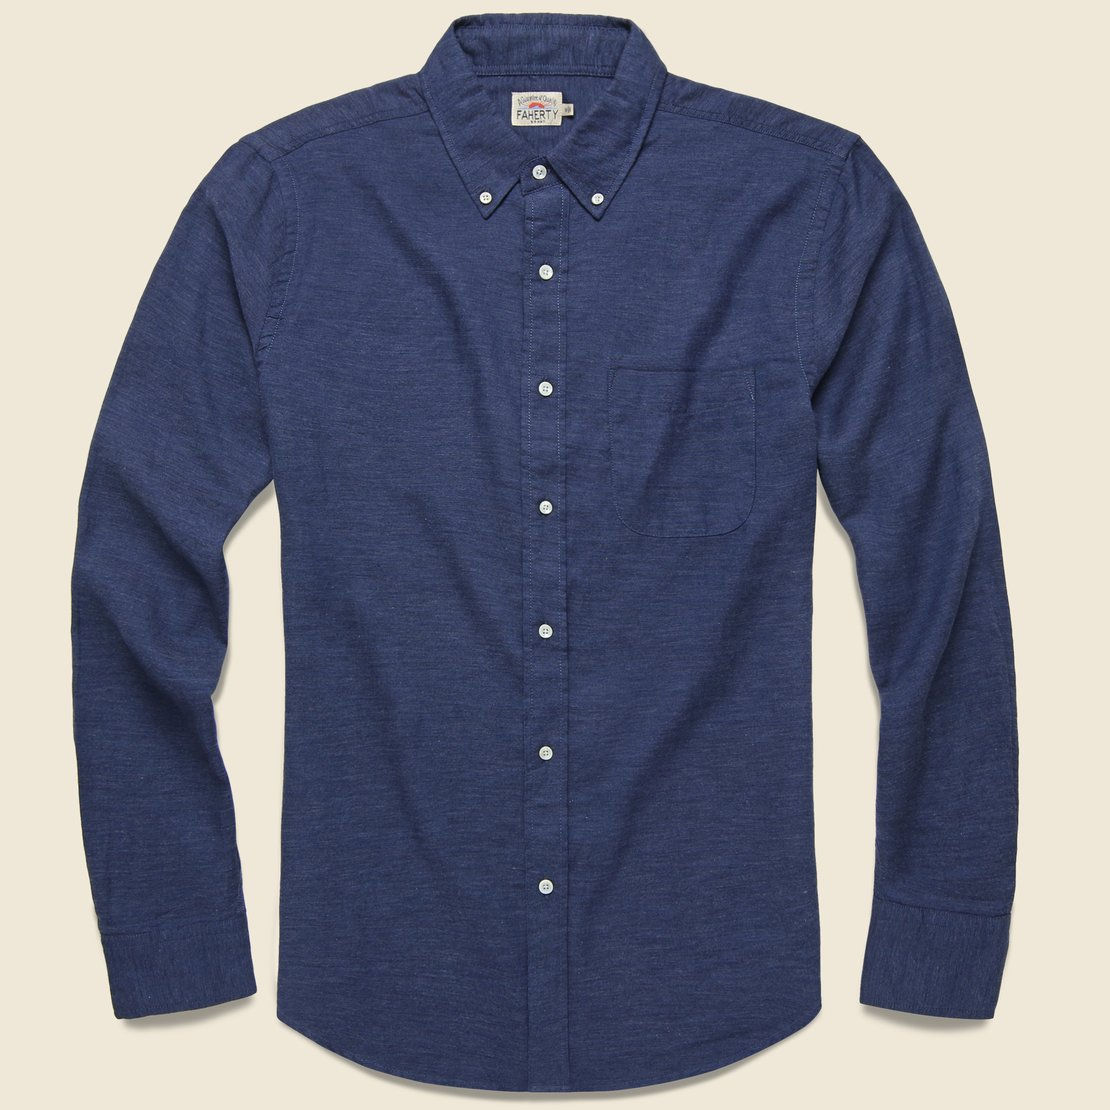 Faherty Melange Oxford Shirt - Navy